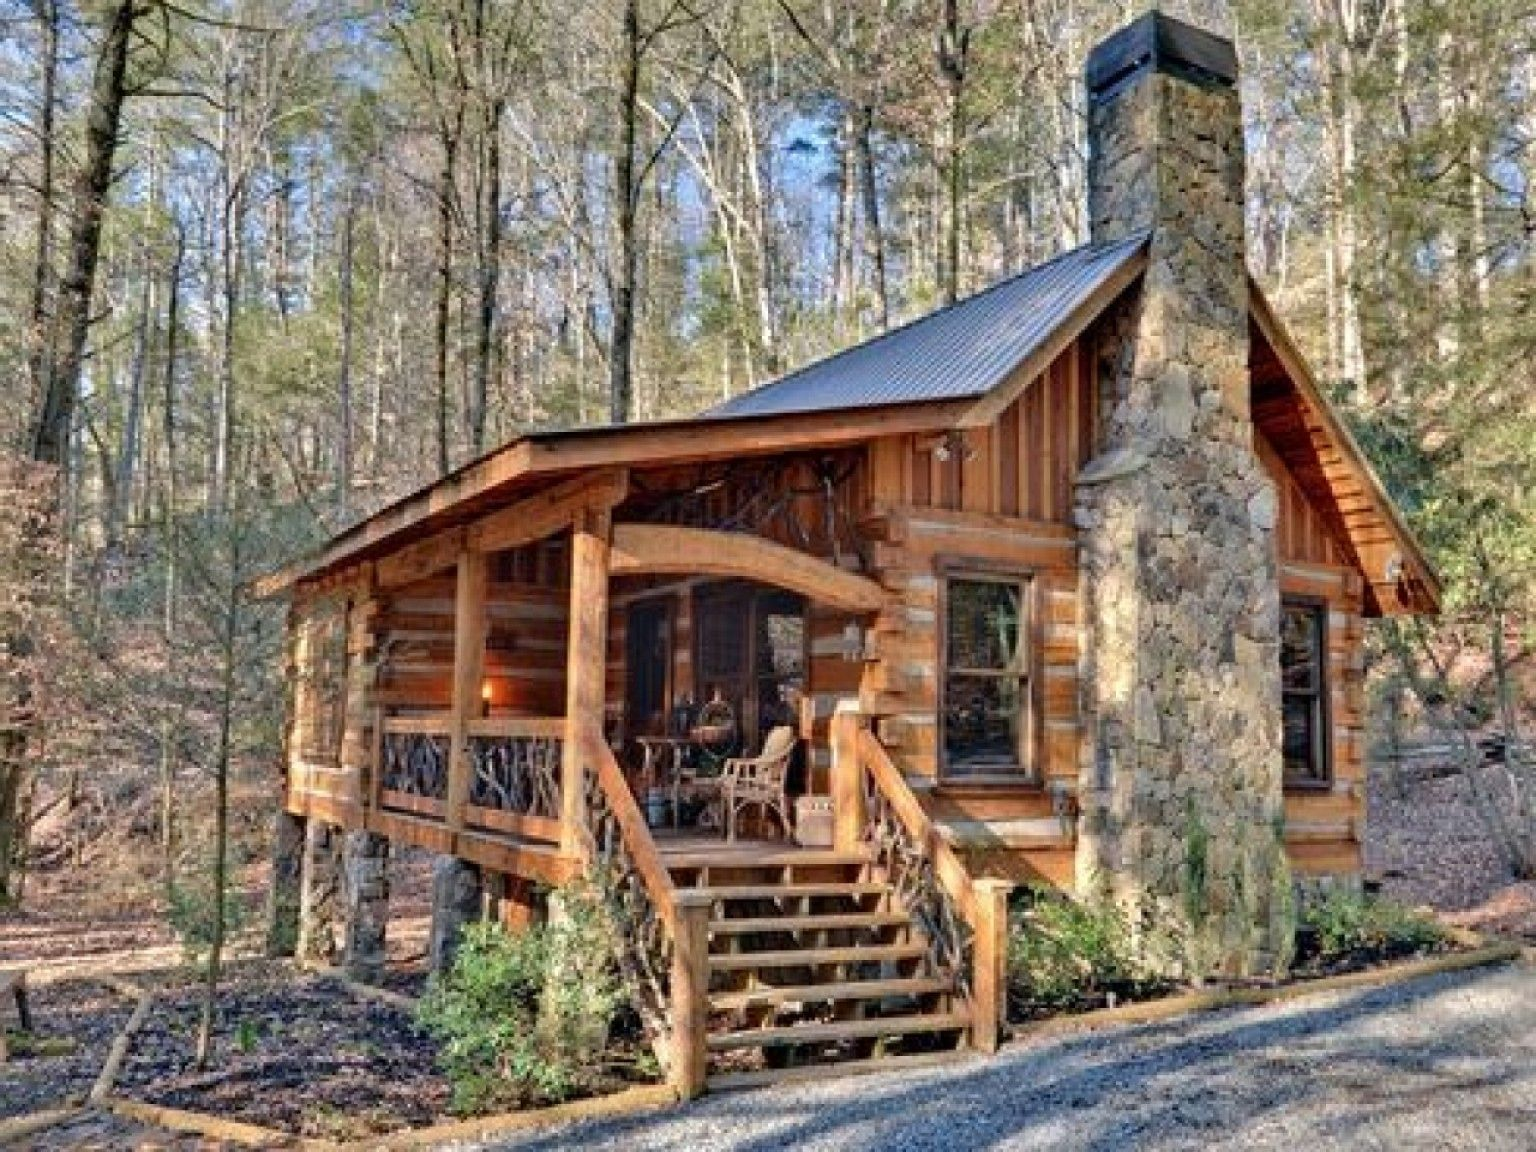 Small Log Cabin Kit Homes for Sale